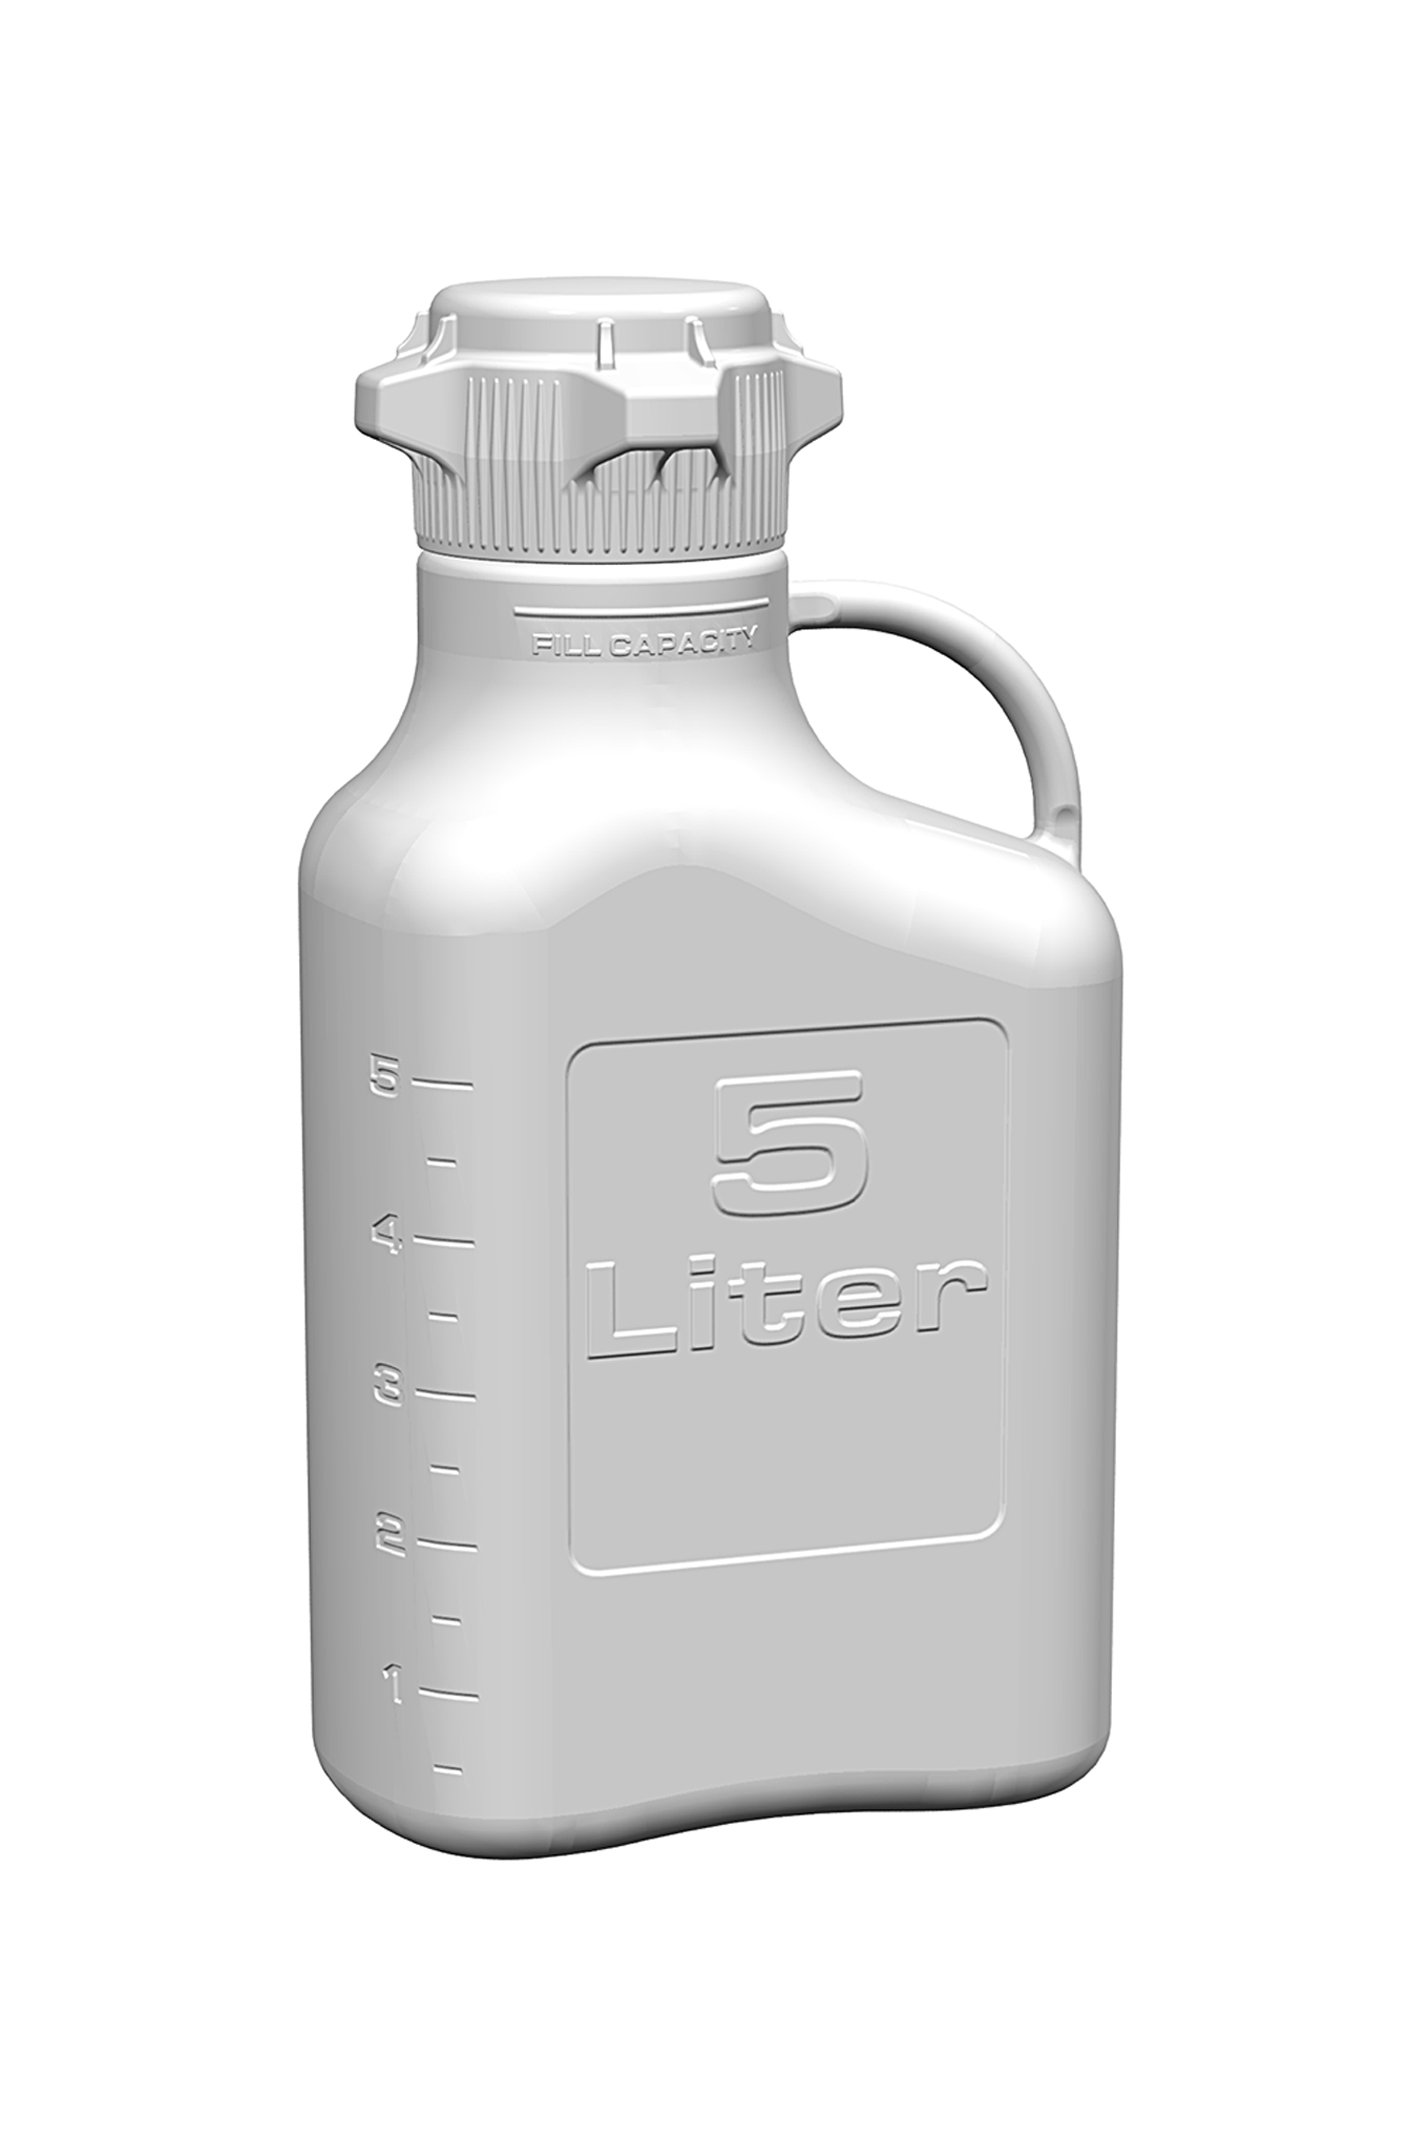 EZgrip 5L (1 Gal) HDPE Space Saving Carboy with 83mm (83B) VersaCap and 6.9L Max Capacity, Large Pinched Handles